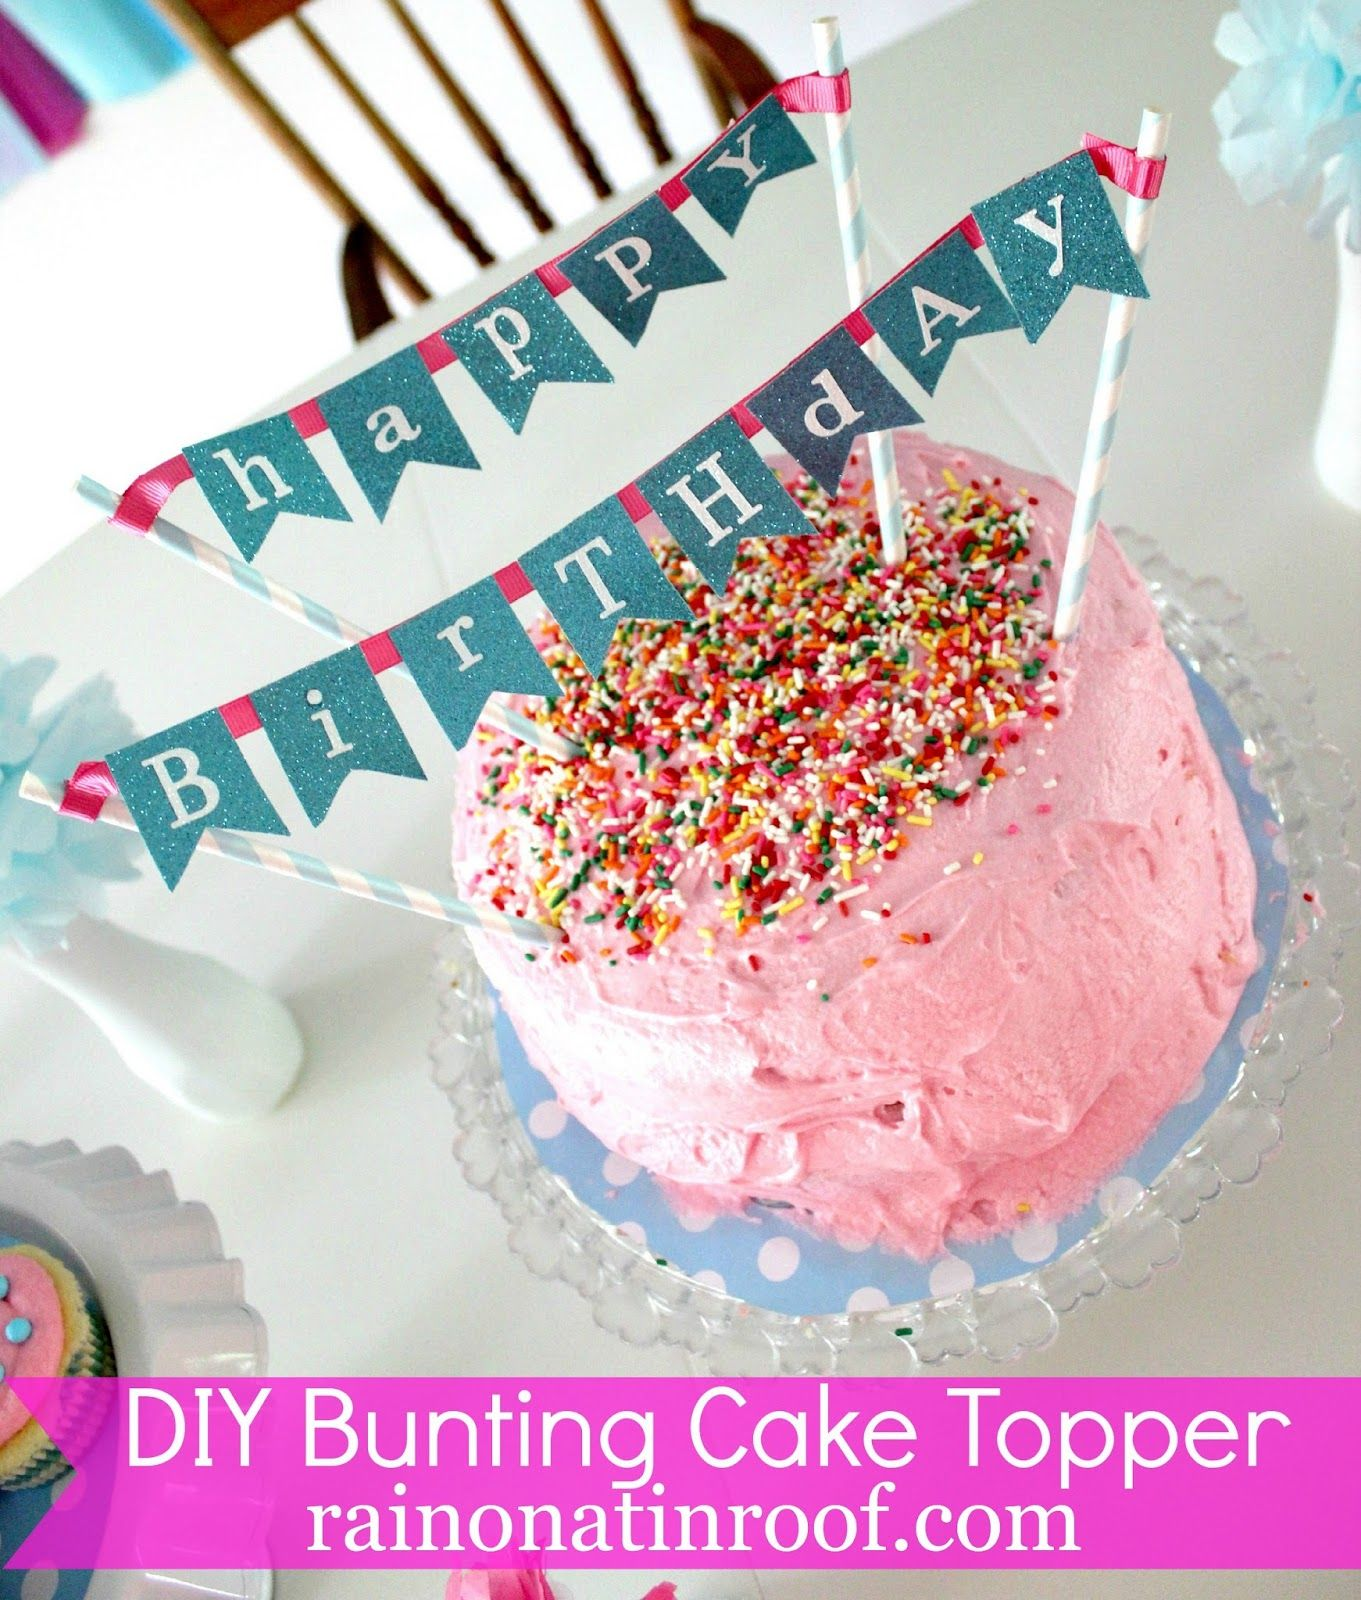 DIY Bunting Cake Topper Via RainonaTinRoof